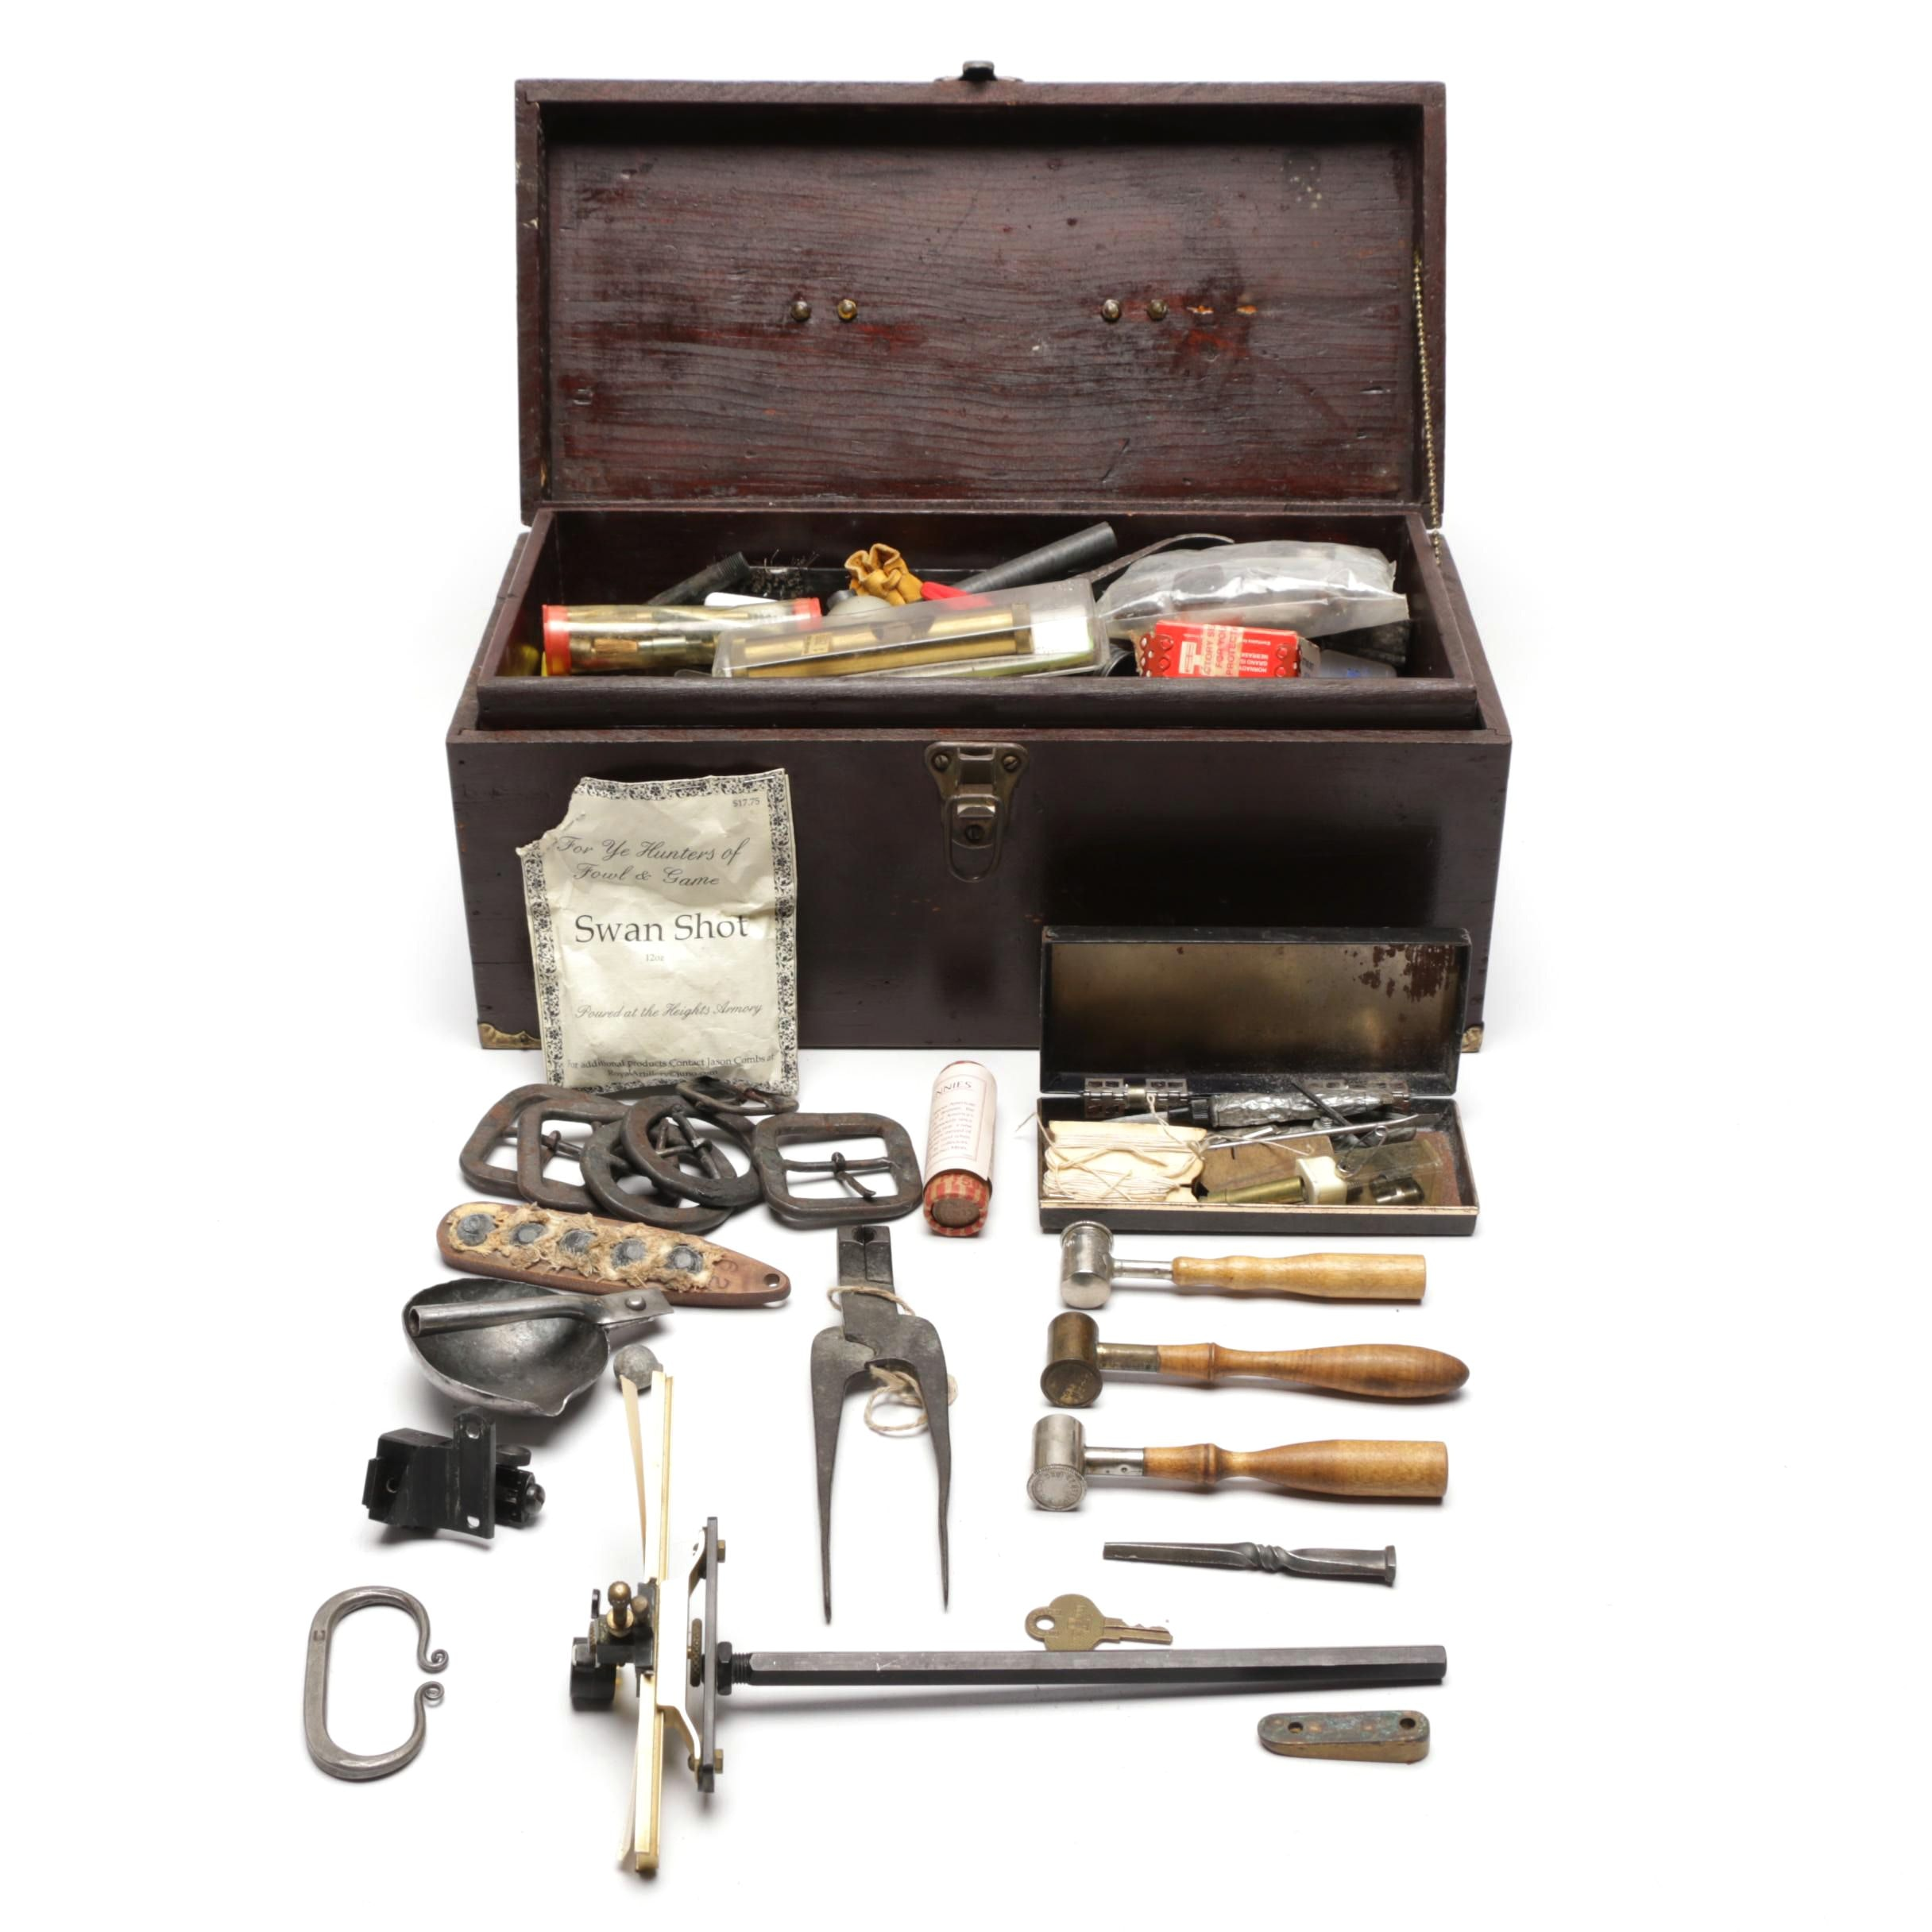 Silversmith Tools Including Shot and Powder Dippers, Tools, Gun Flints and More